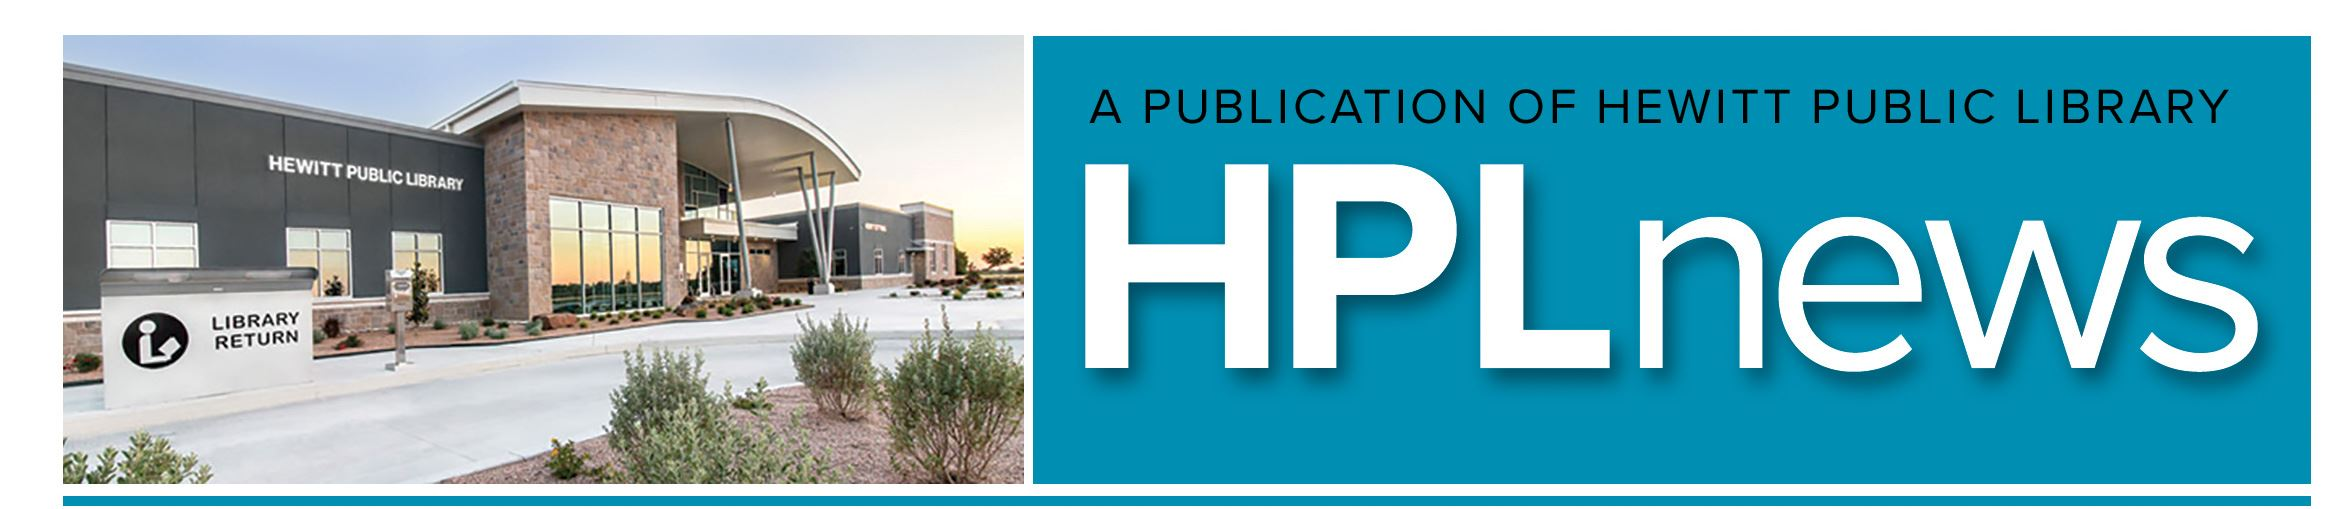 HPL news cropped